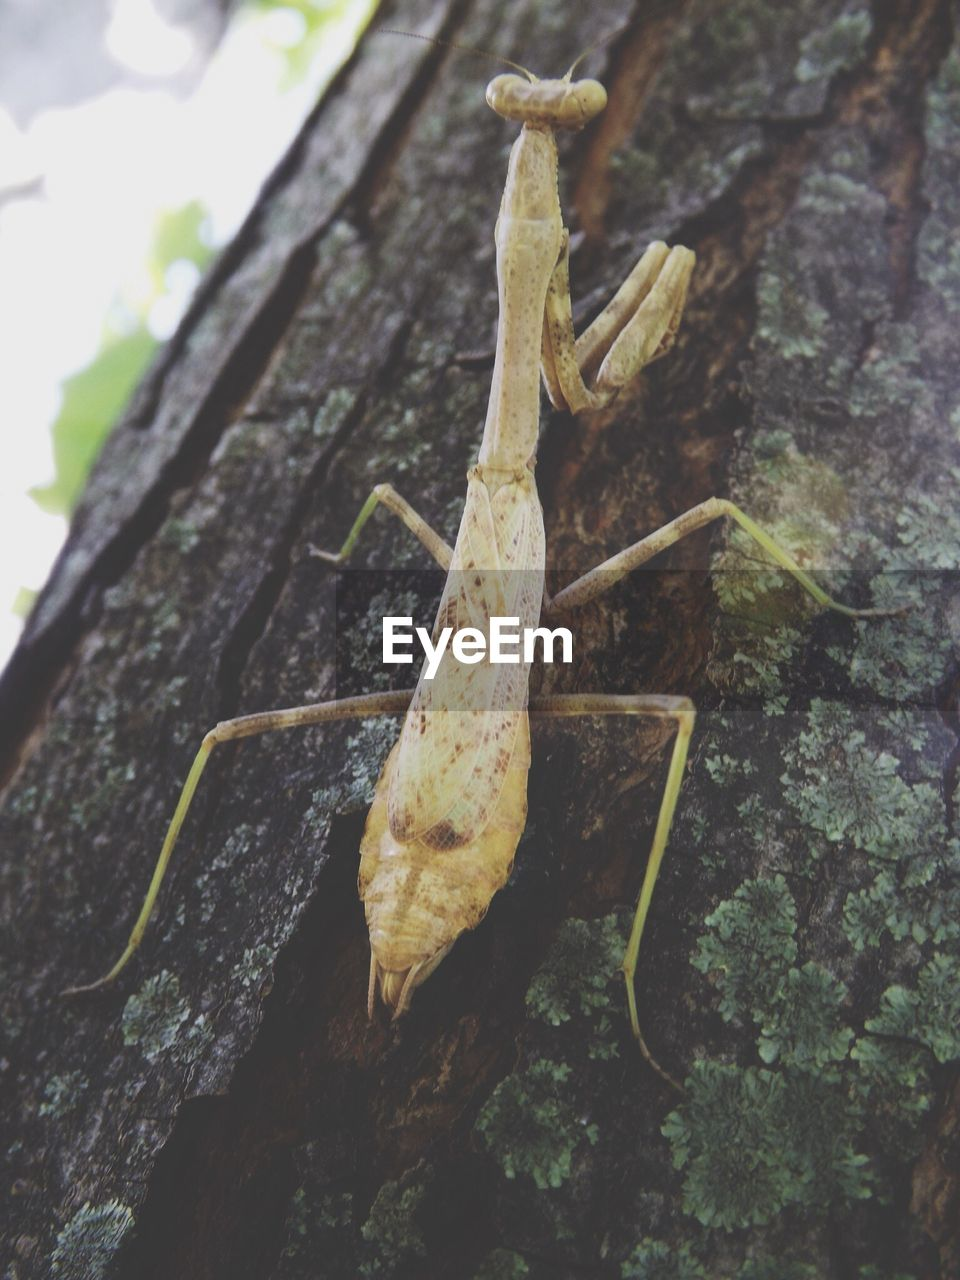 CLOSE-UP OF INSECTS ON TREE TRUNK